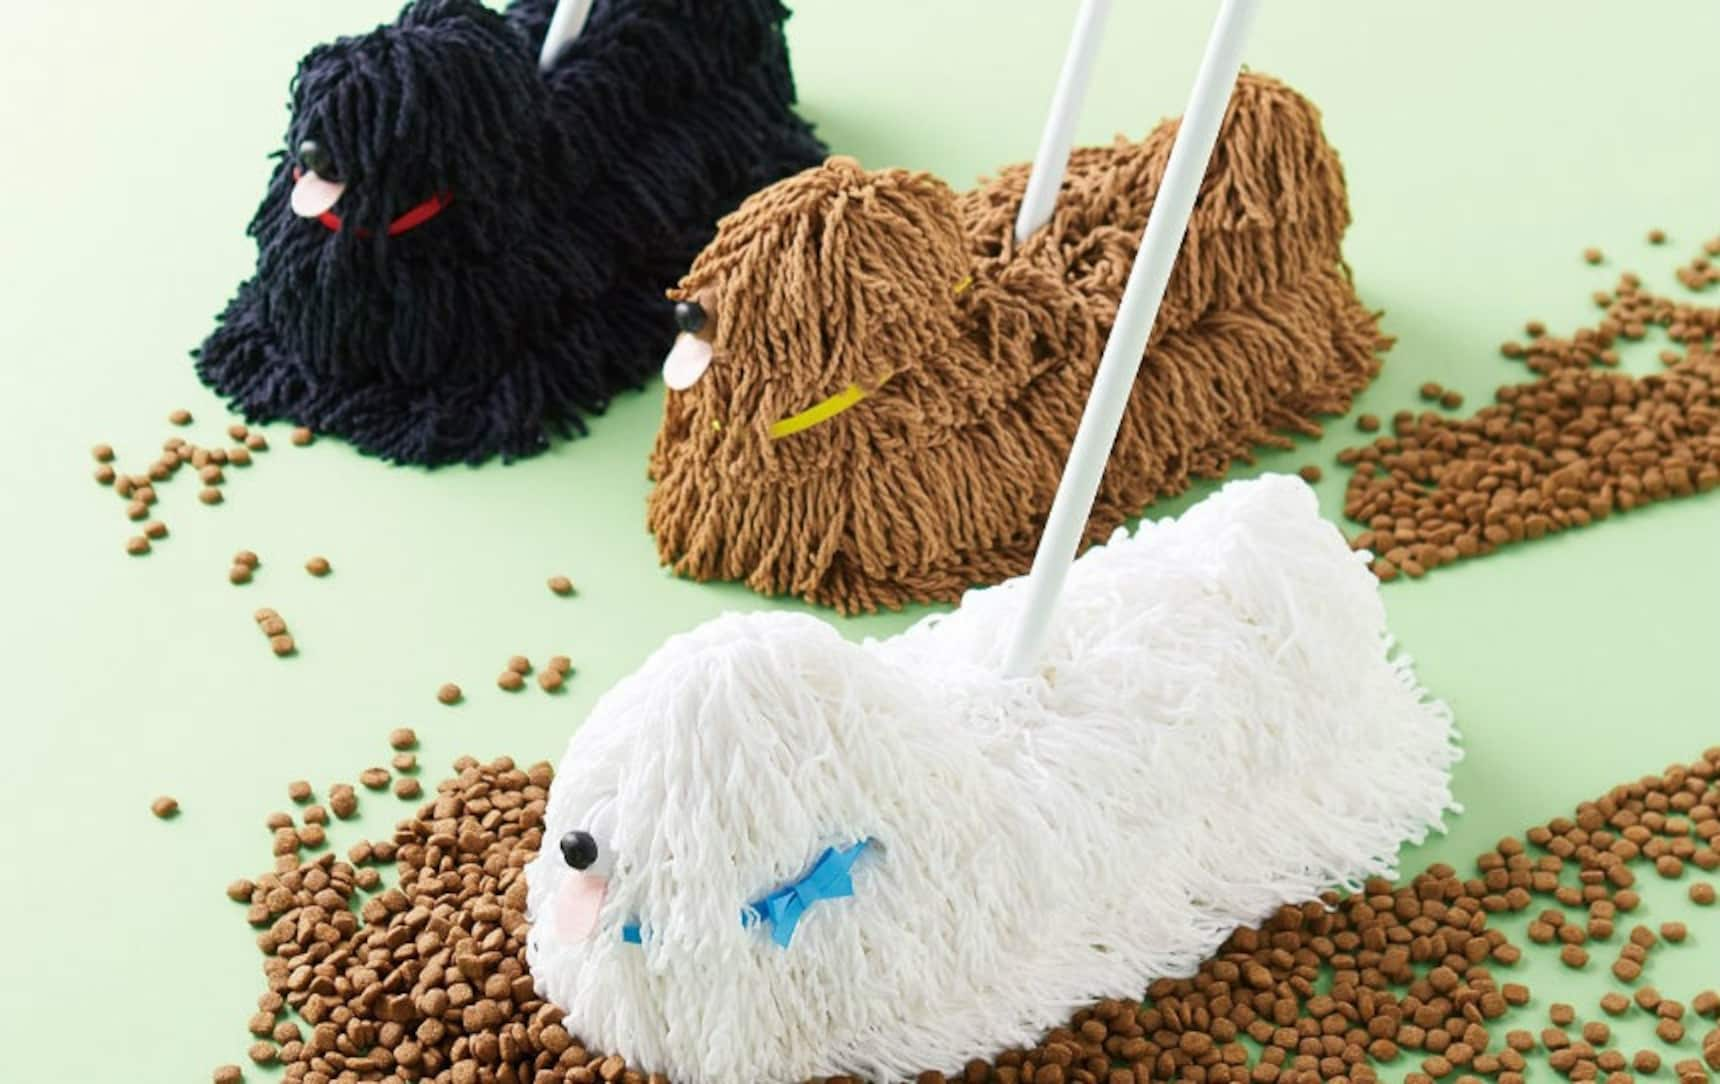 Mop Your Dirty Floors With a Pooch